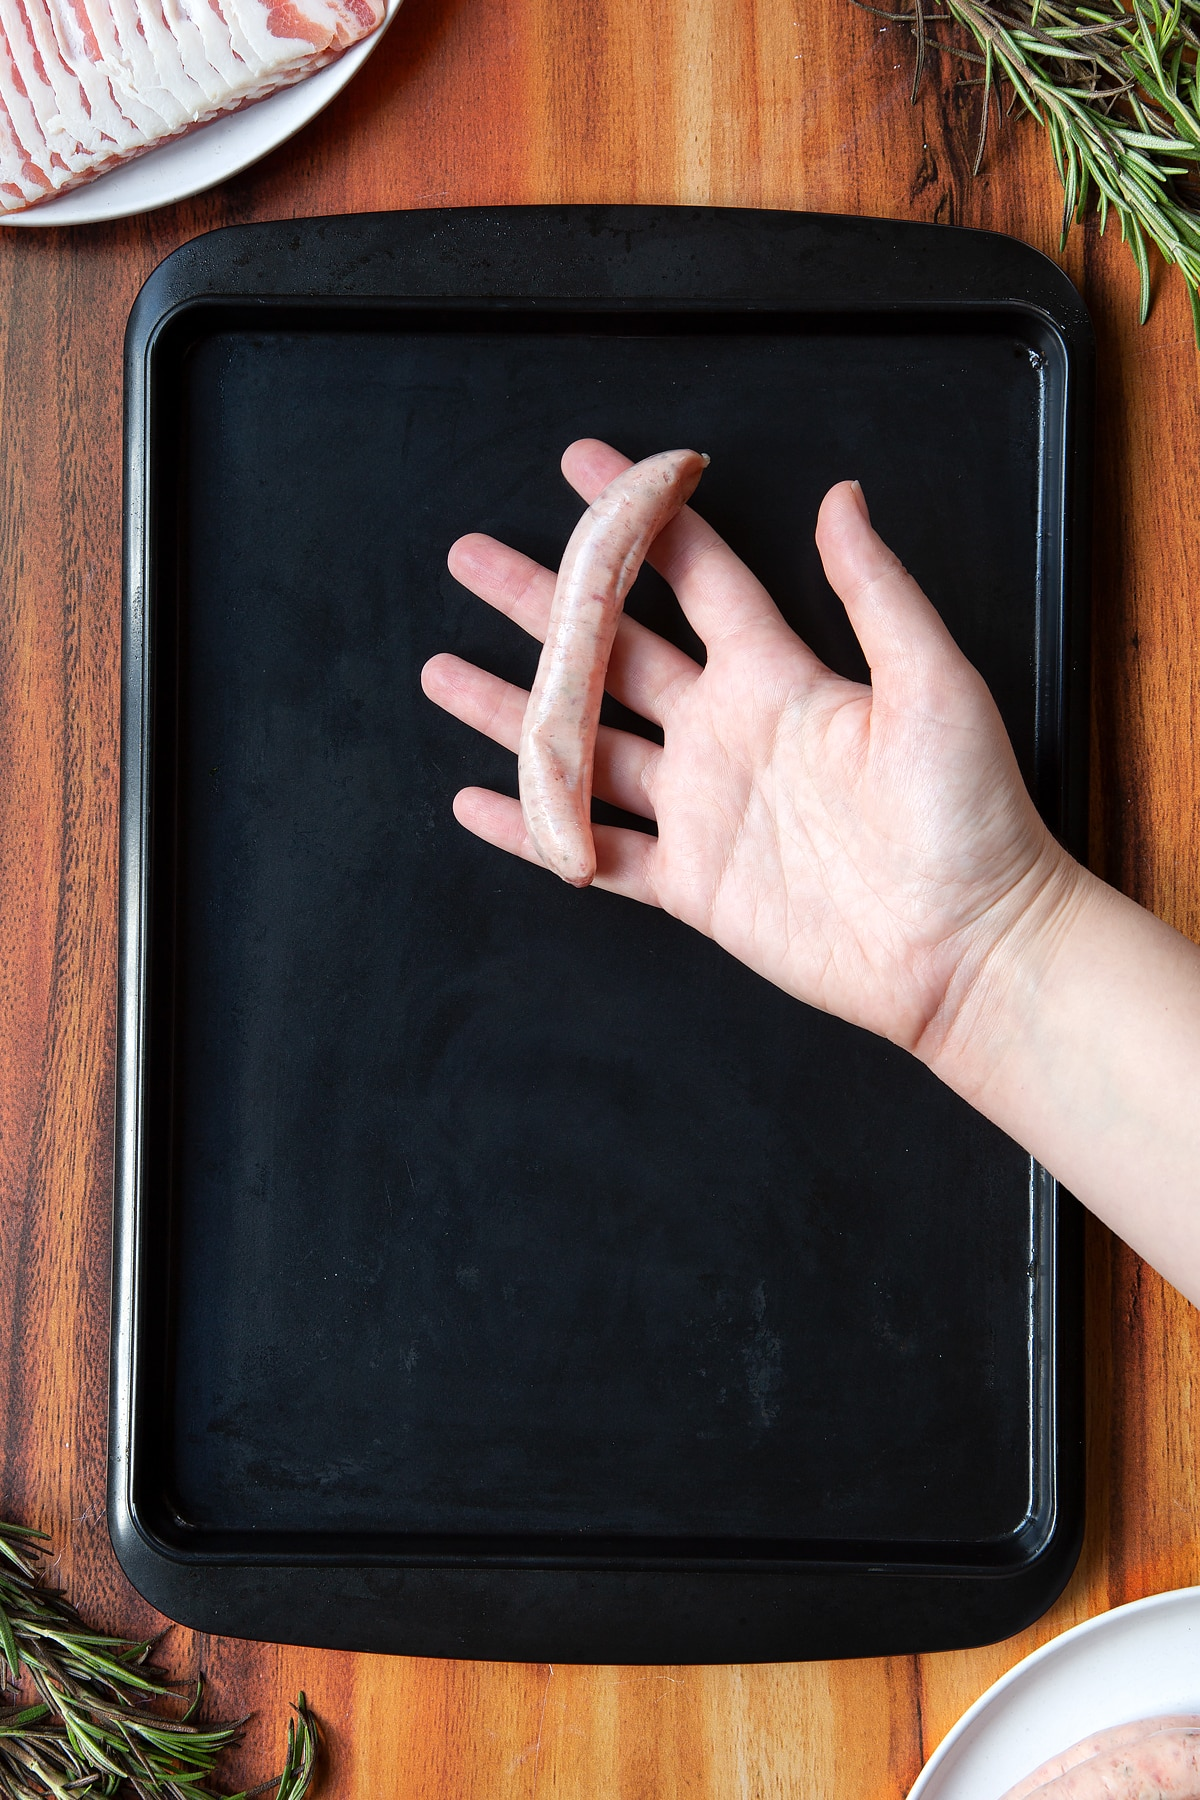 Overhead shot of a hand holding a sausage above black tray